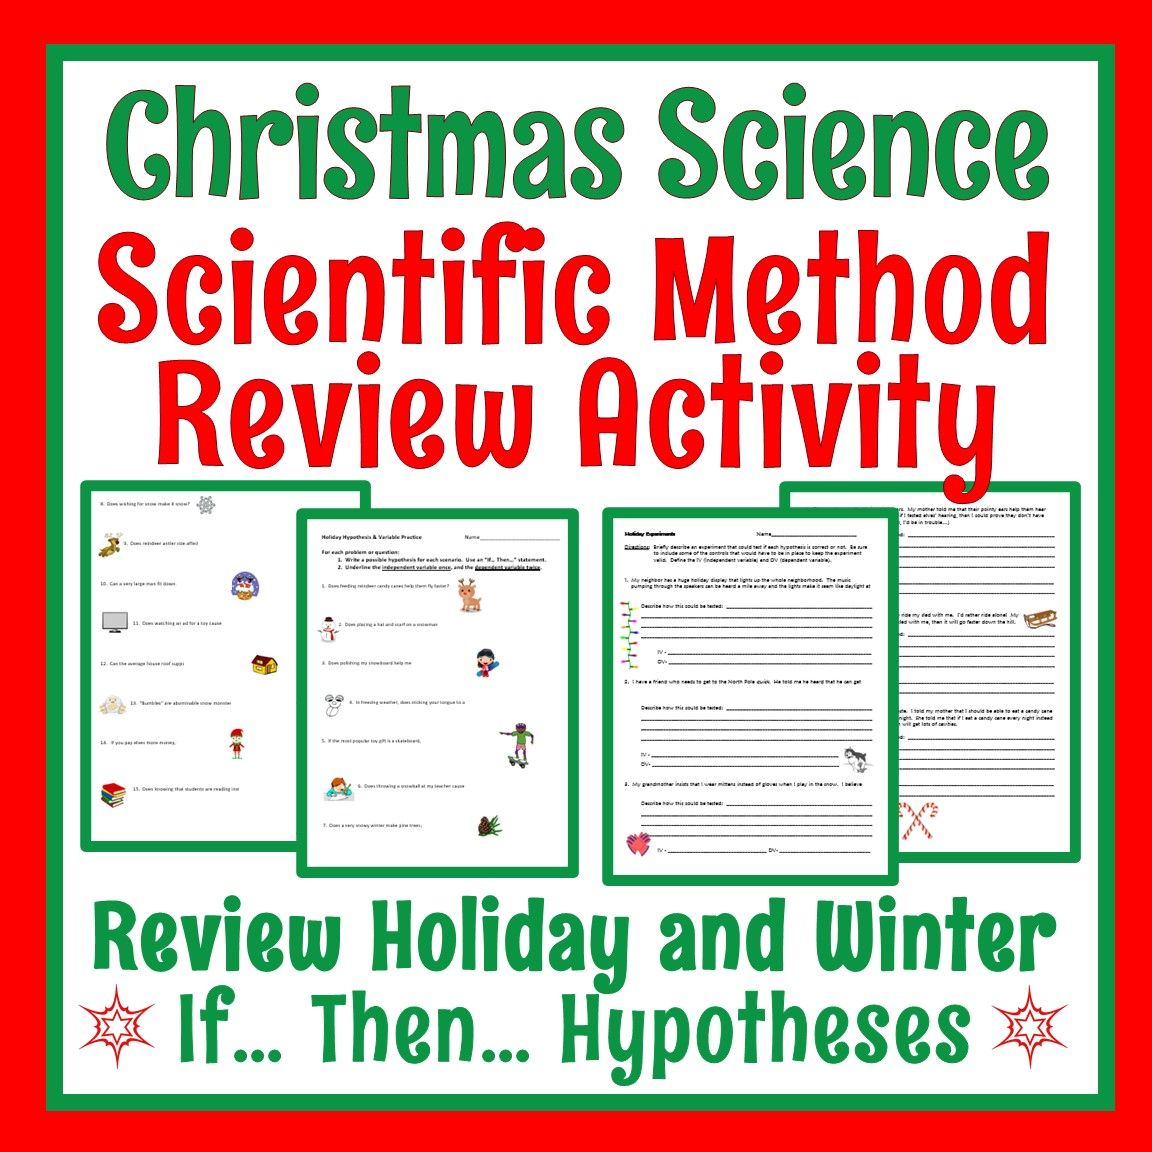 Middle School Christmas Science Activity Science Worksheets Christmas Science Christmas Science Activities